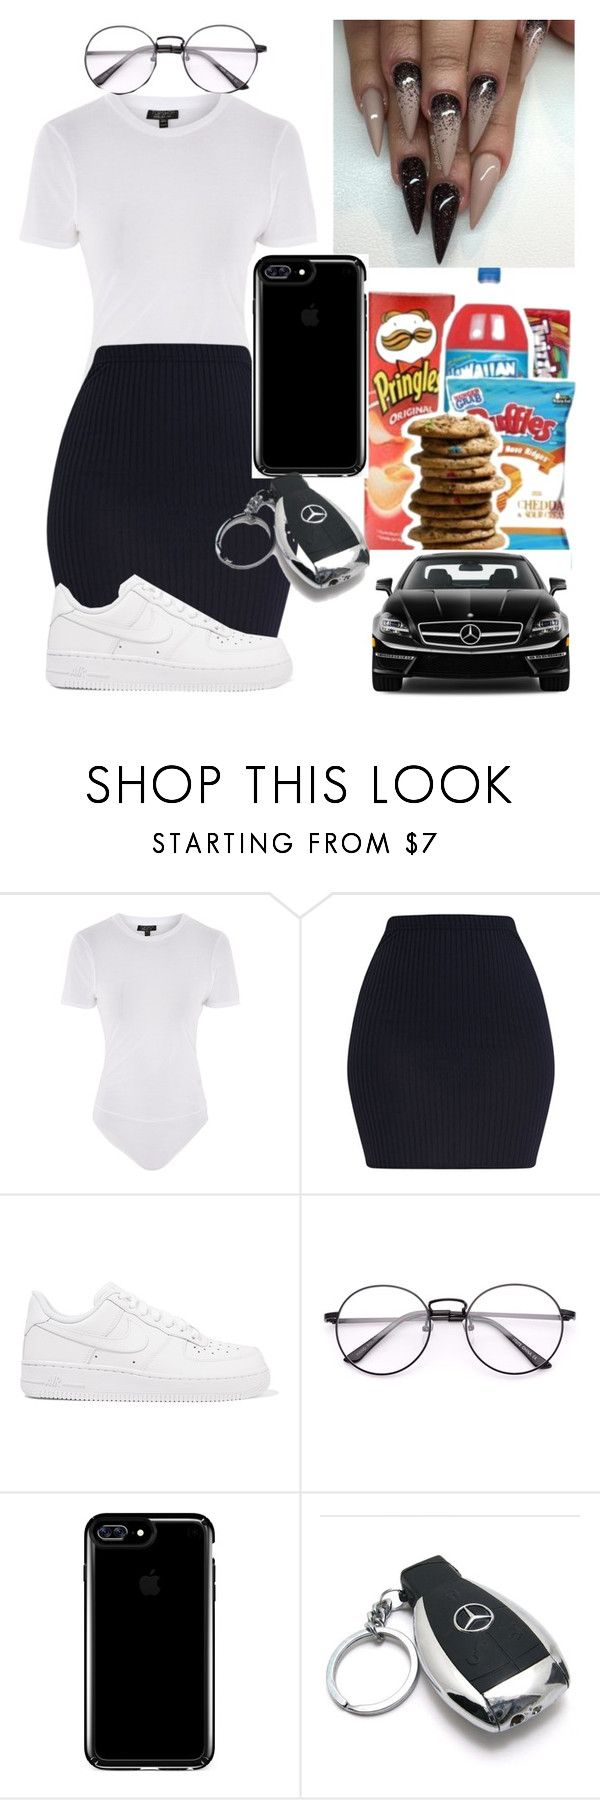 """Ready to go"" by marleymal ❤ liked on Polyvore featuring Topshop, NIKE, Speck and Mercedes-Benz"